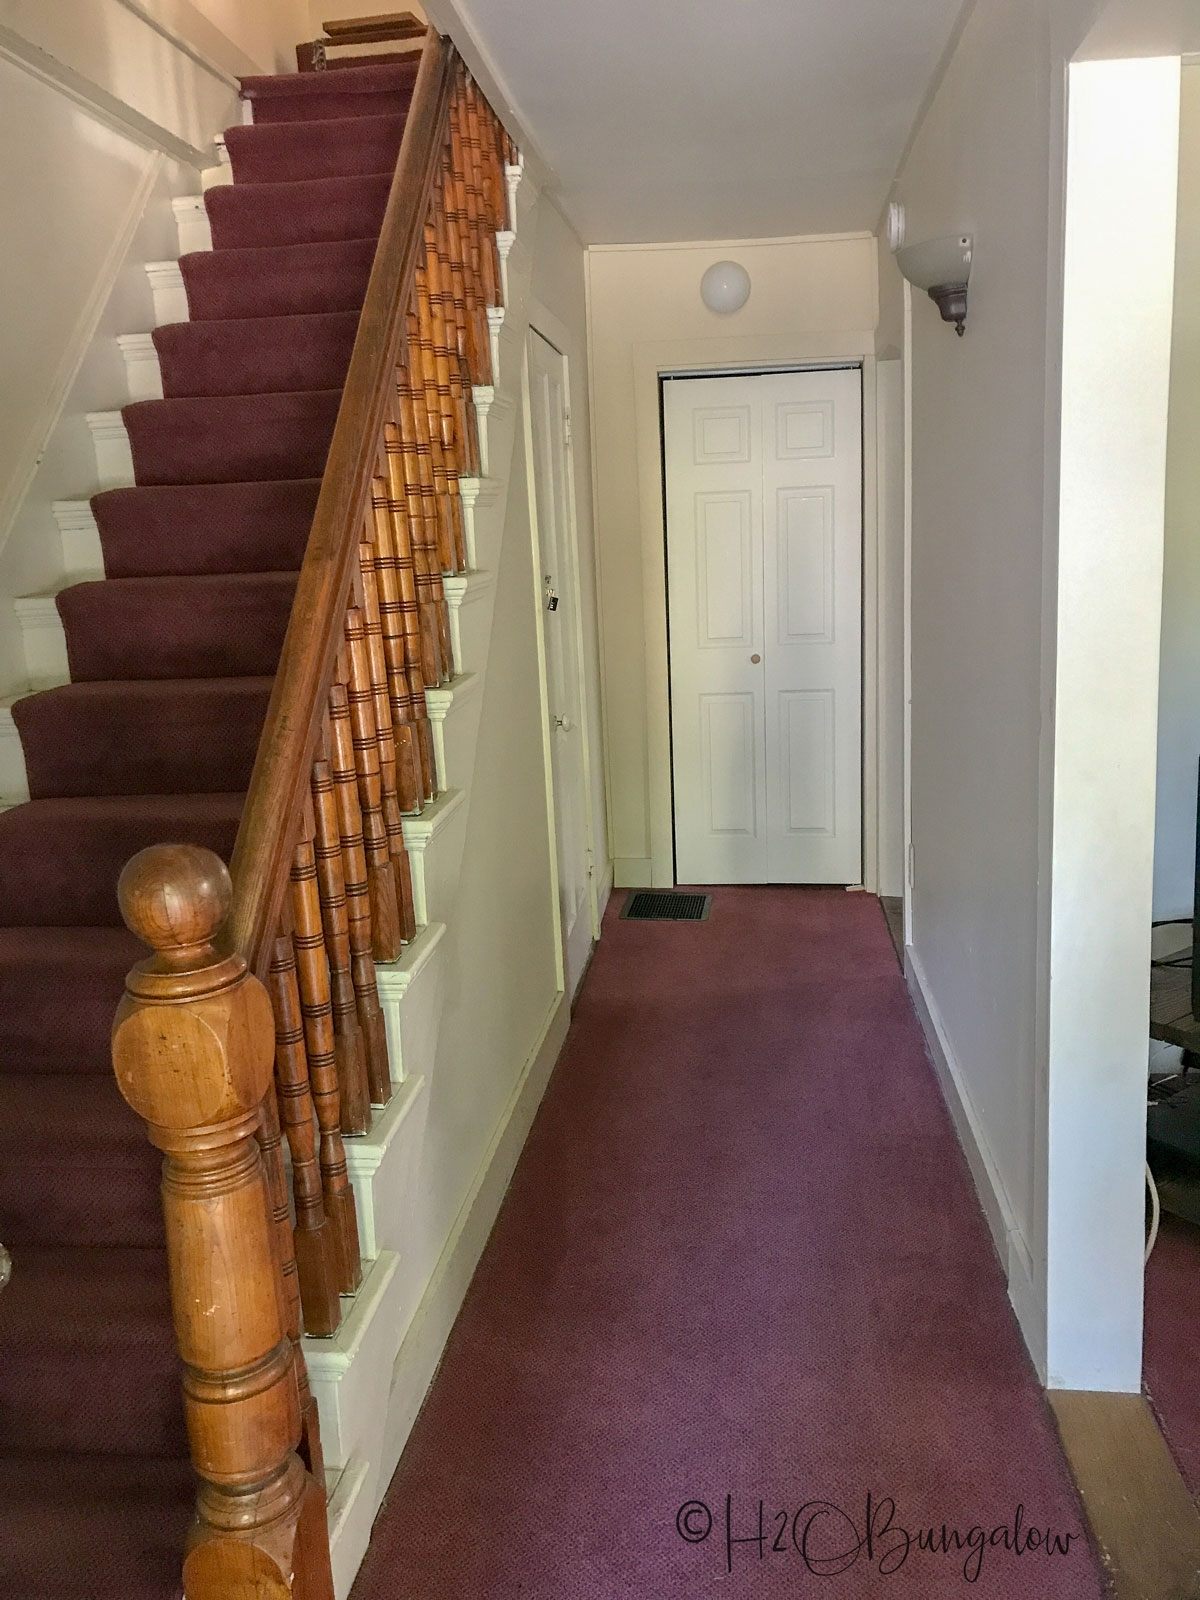 How To Install Carpet Runner On Stairs H2Obungalow | Roll Runners For Stairs | Flooring | Carpet Stair Treads | Canyon Kazmir | Persian Garden | Area Rugs